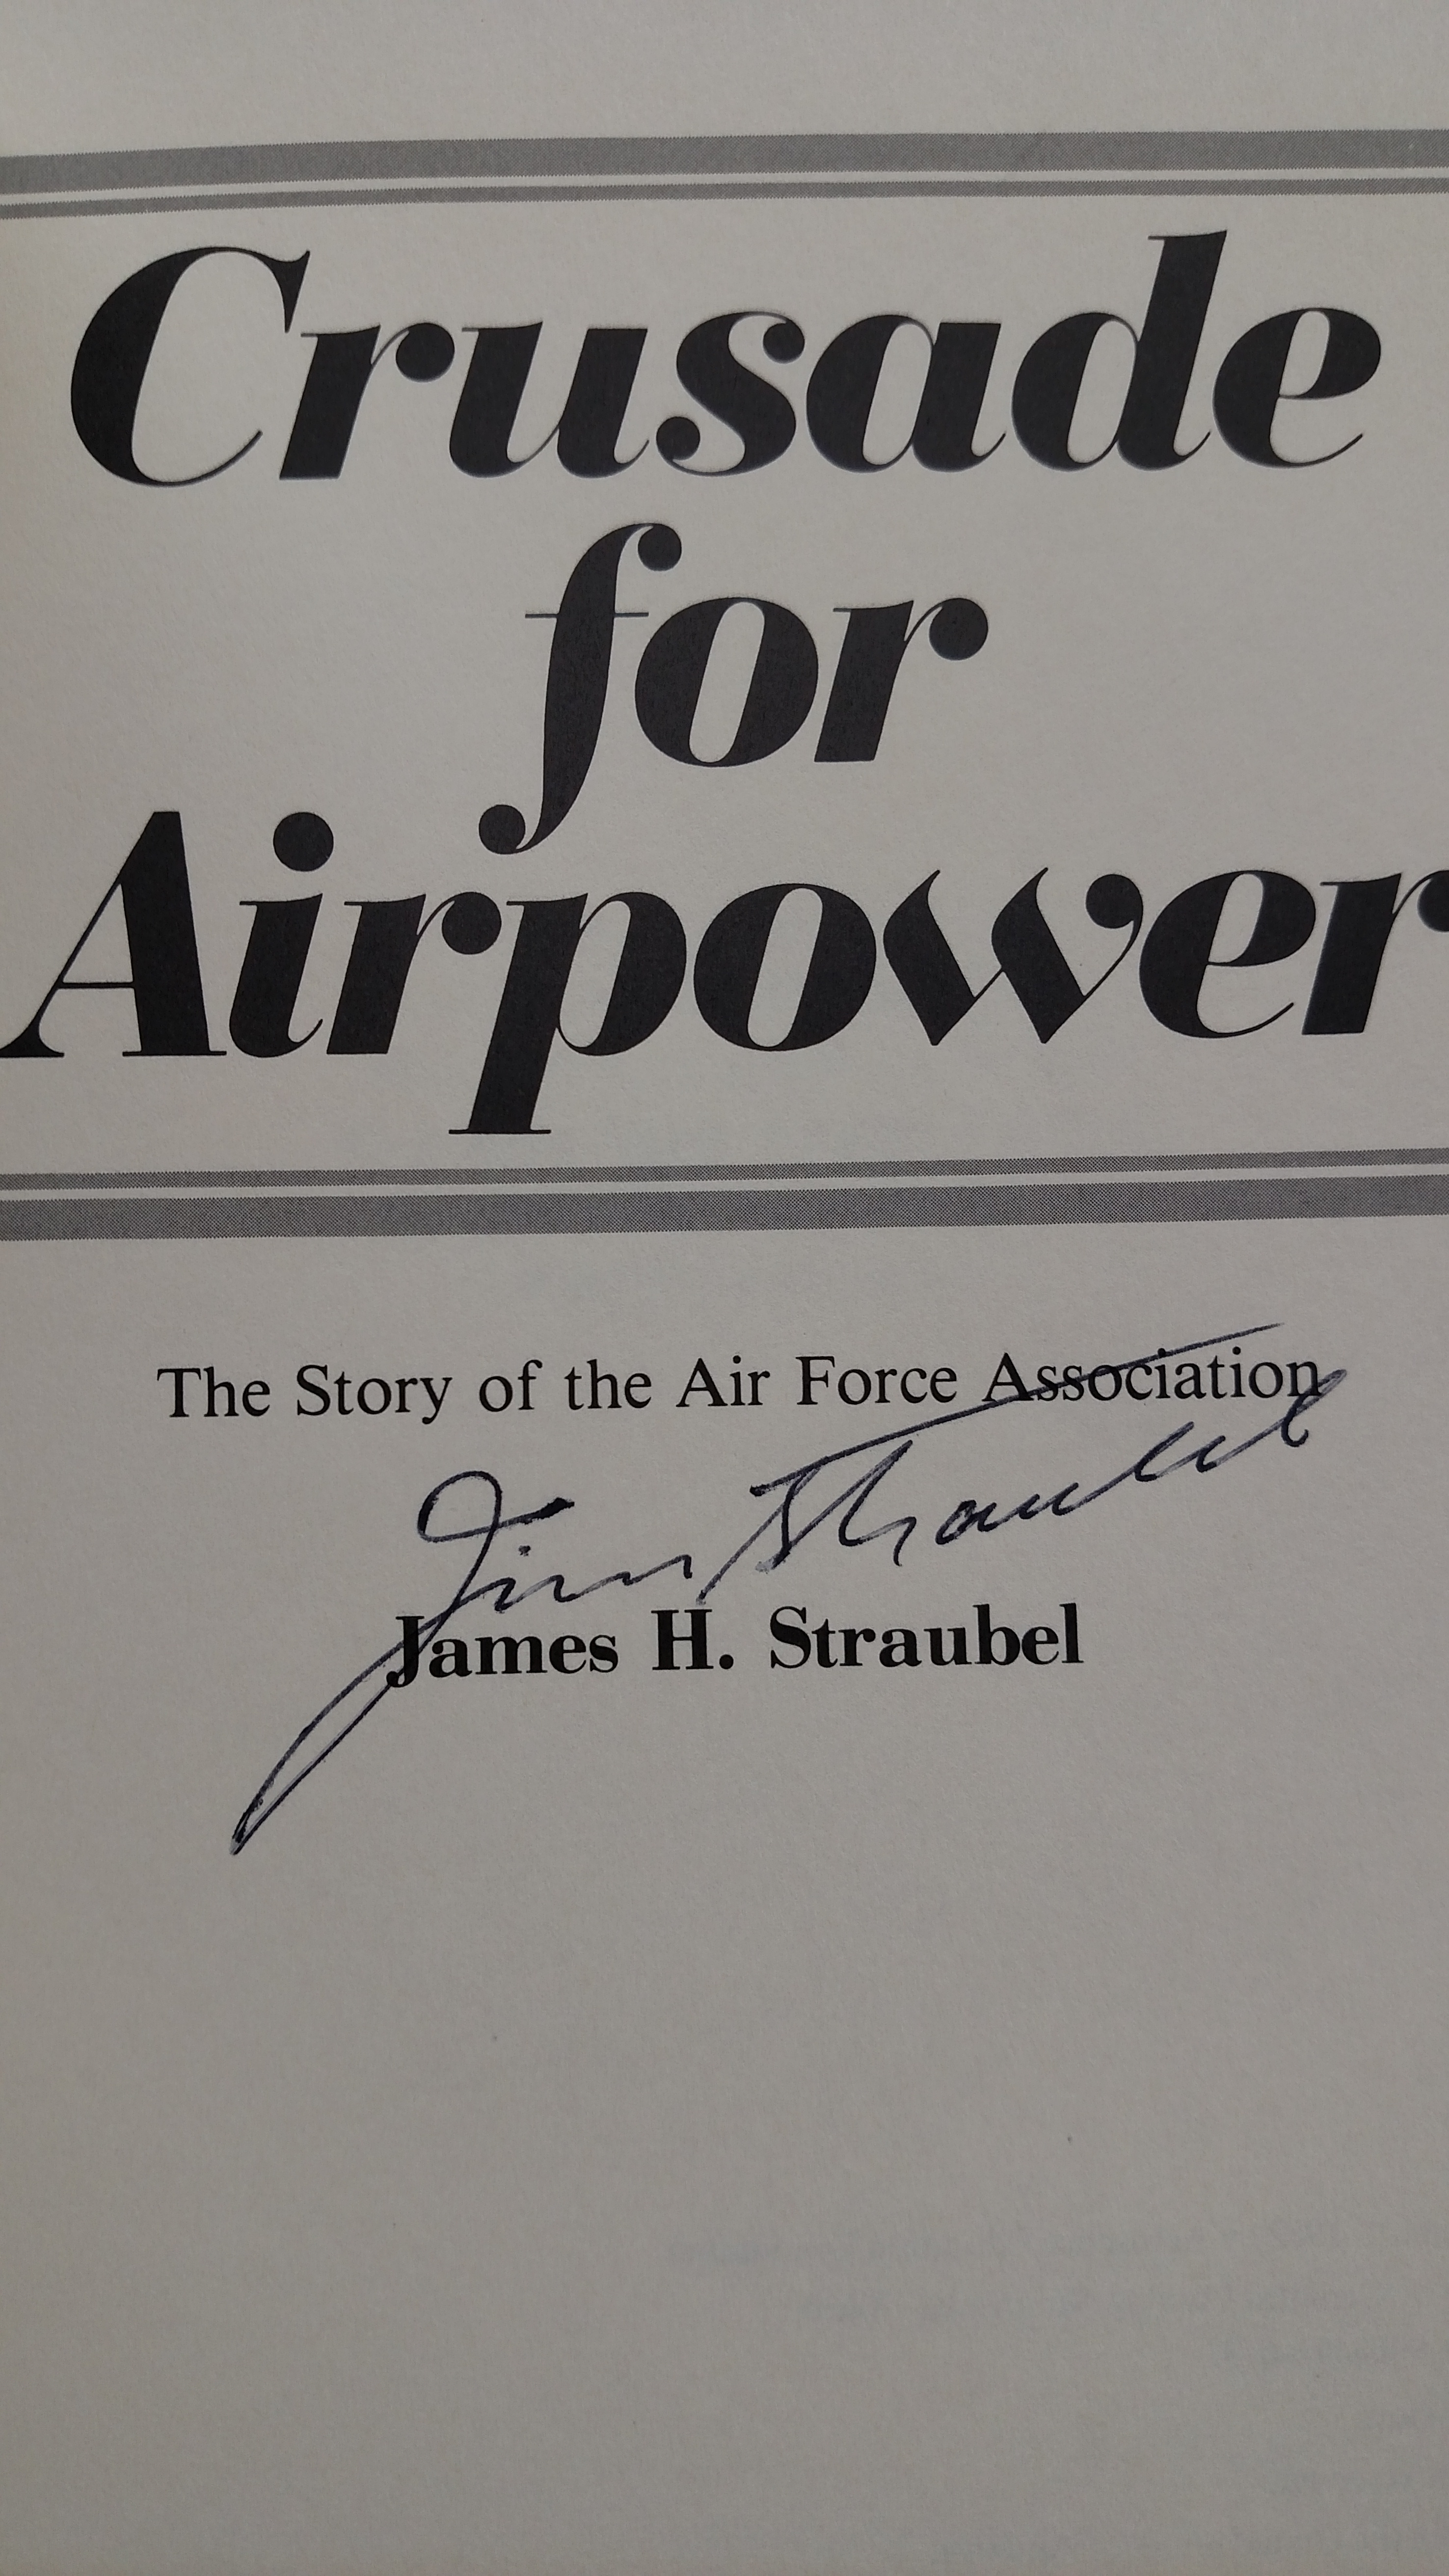 Image 1 of Crusade for Airpower: The story of the Air Force Association